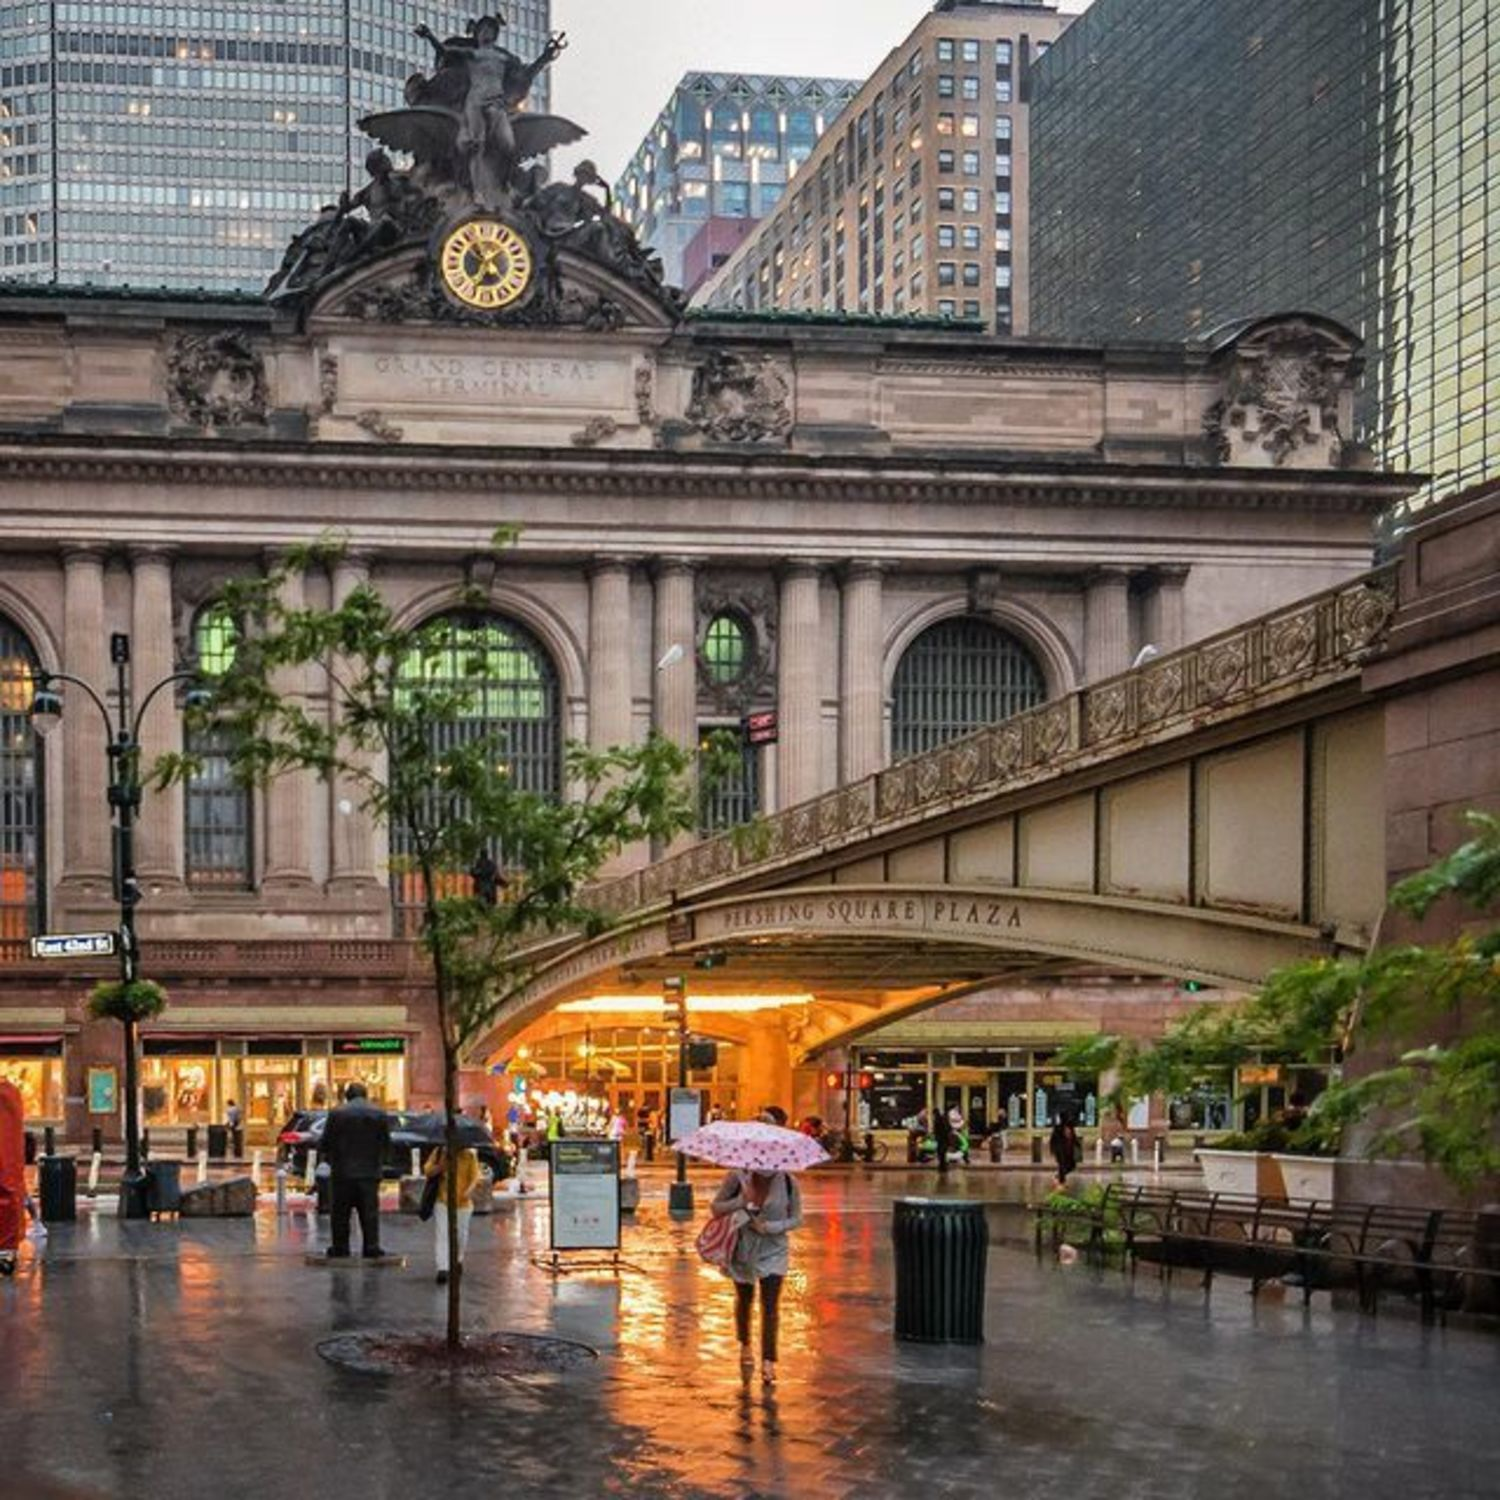 Grand Central Terminal and Pershing Square Plaza, Midtown, Manhattan